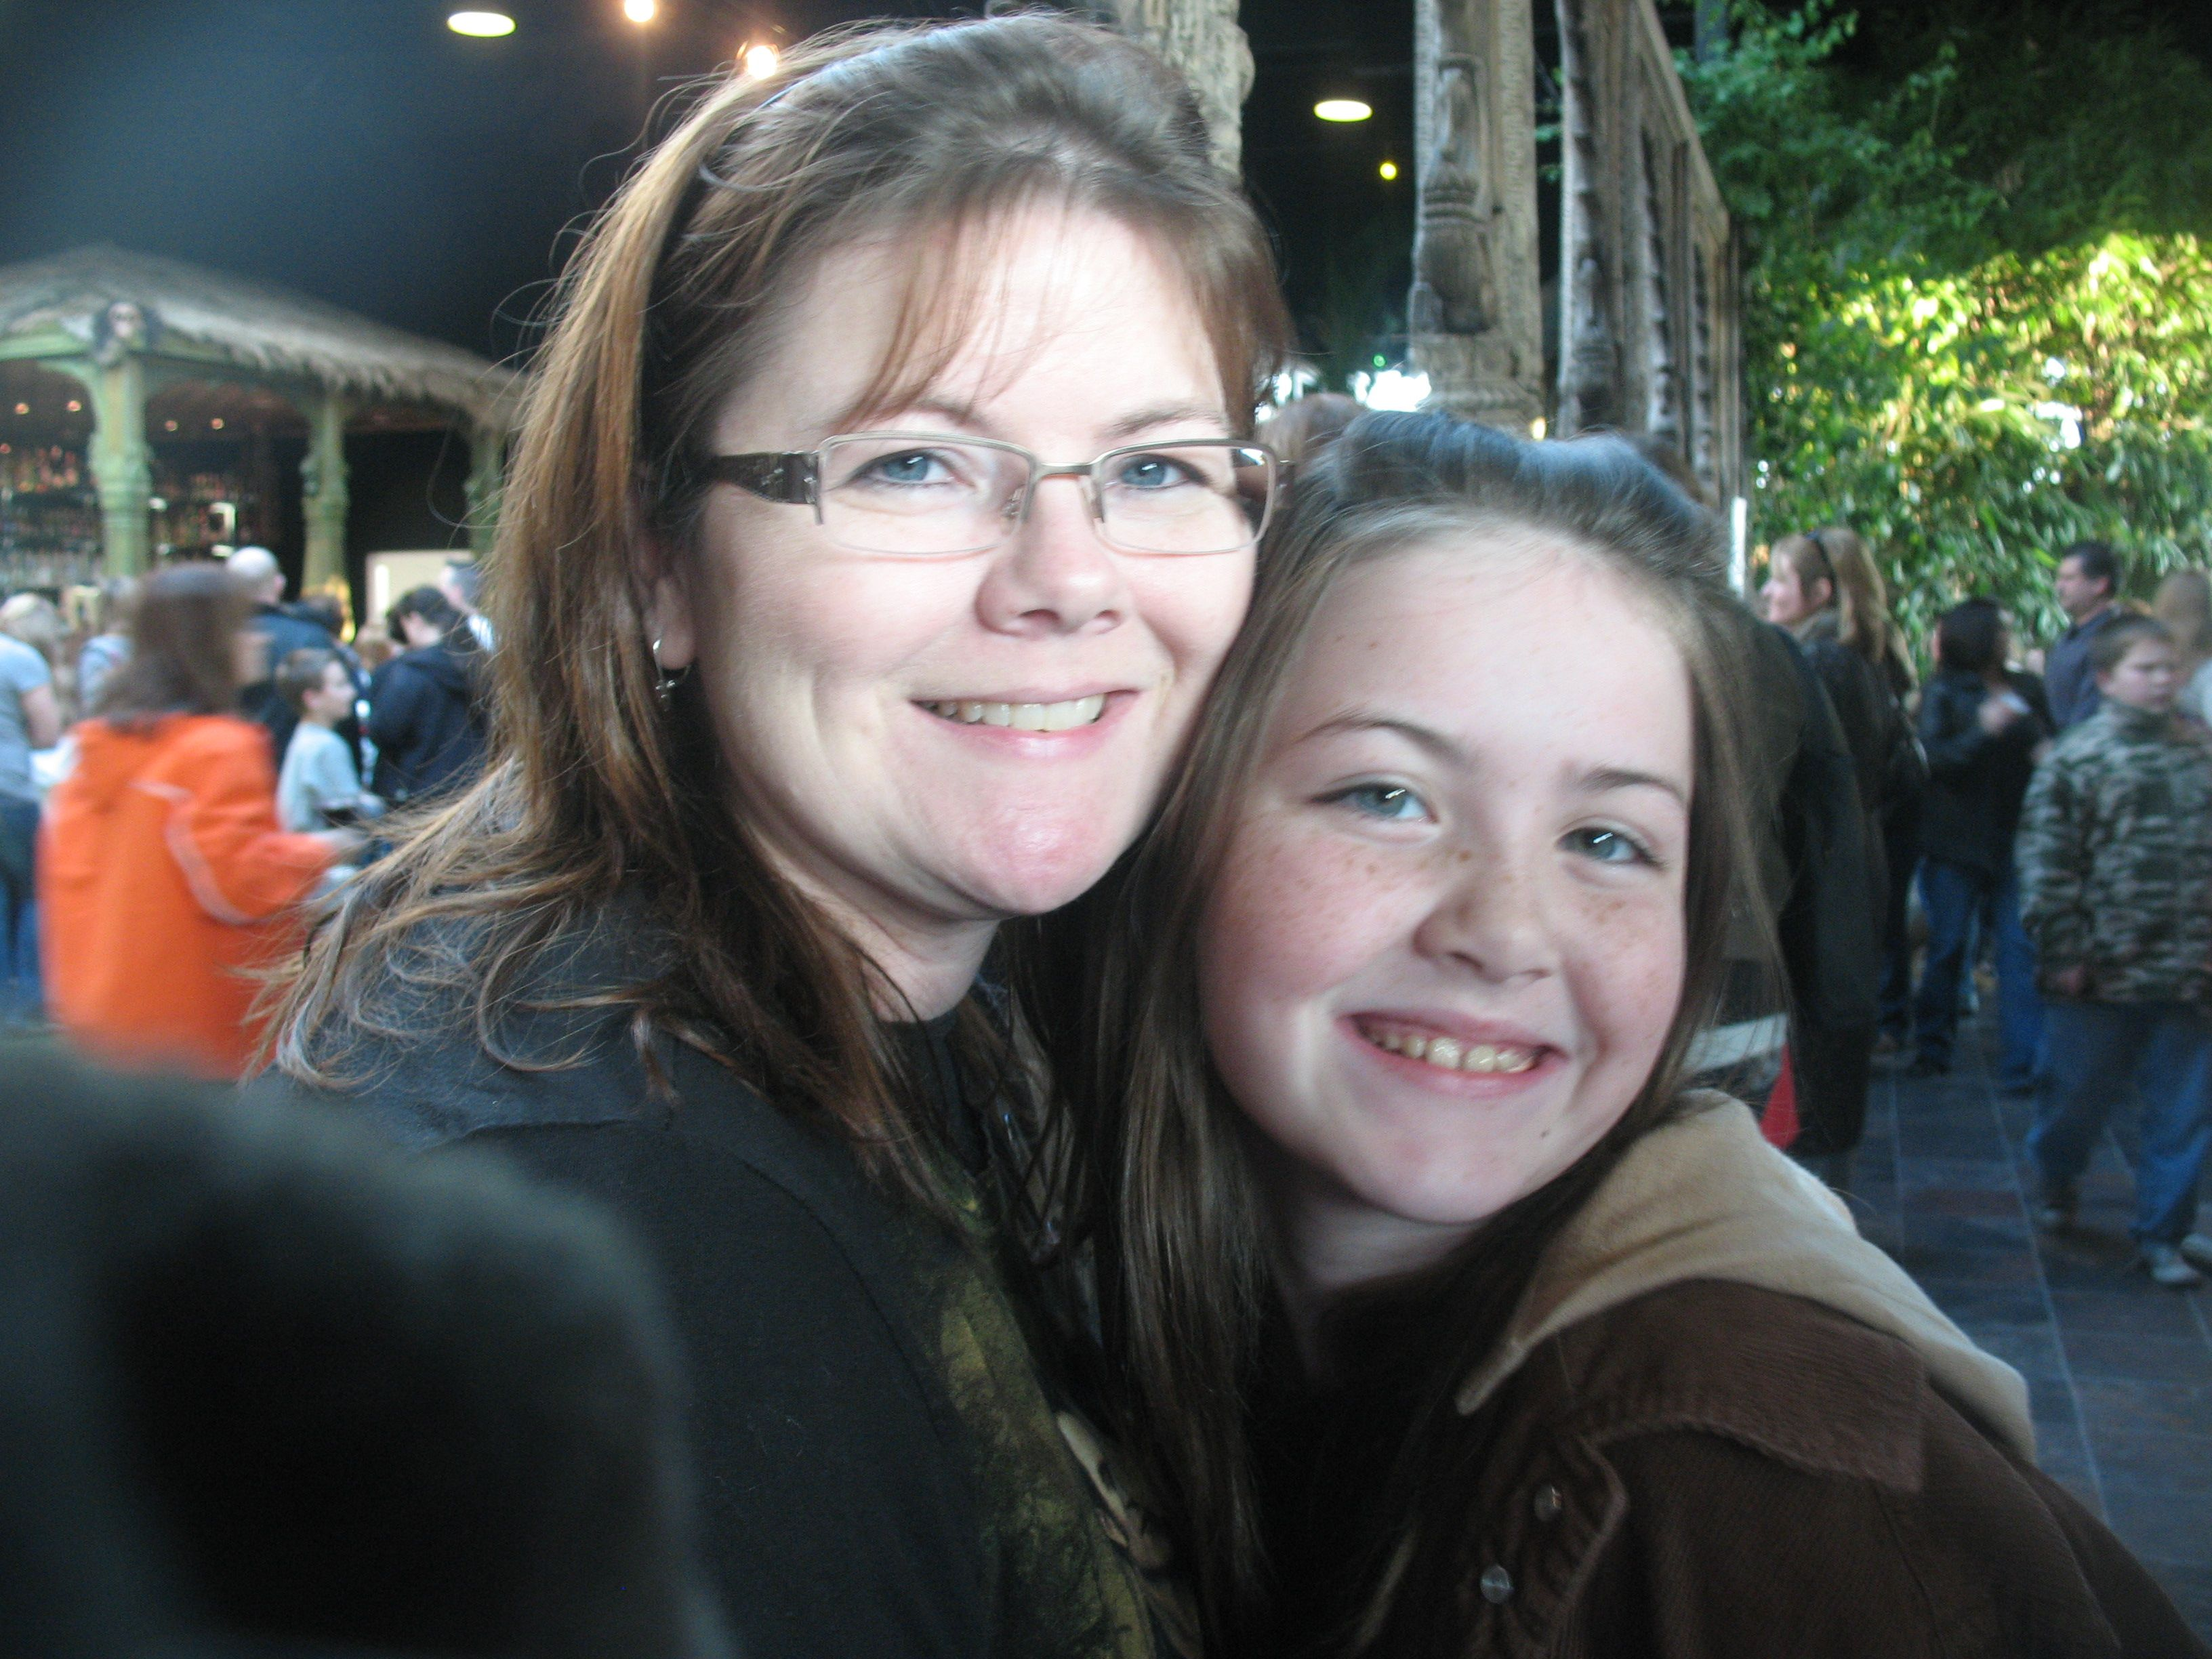 Darling Daughter and I waiting to see New Moon